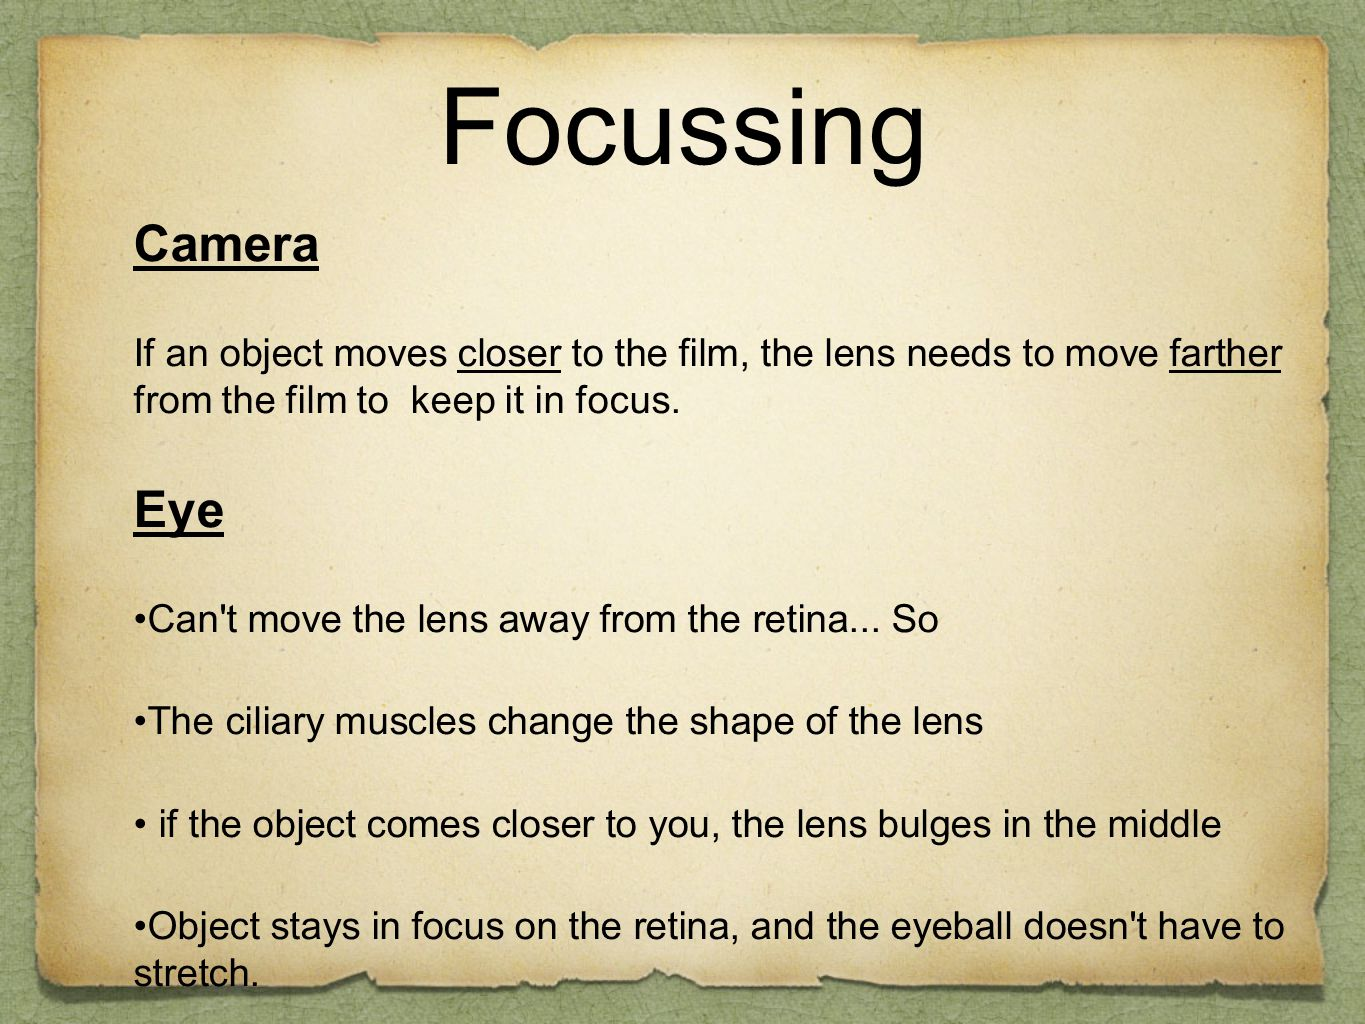 Focussing Camera. If an object moves closer to the film, the lens needs to move farther from the film to keep it in focus.